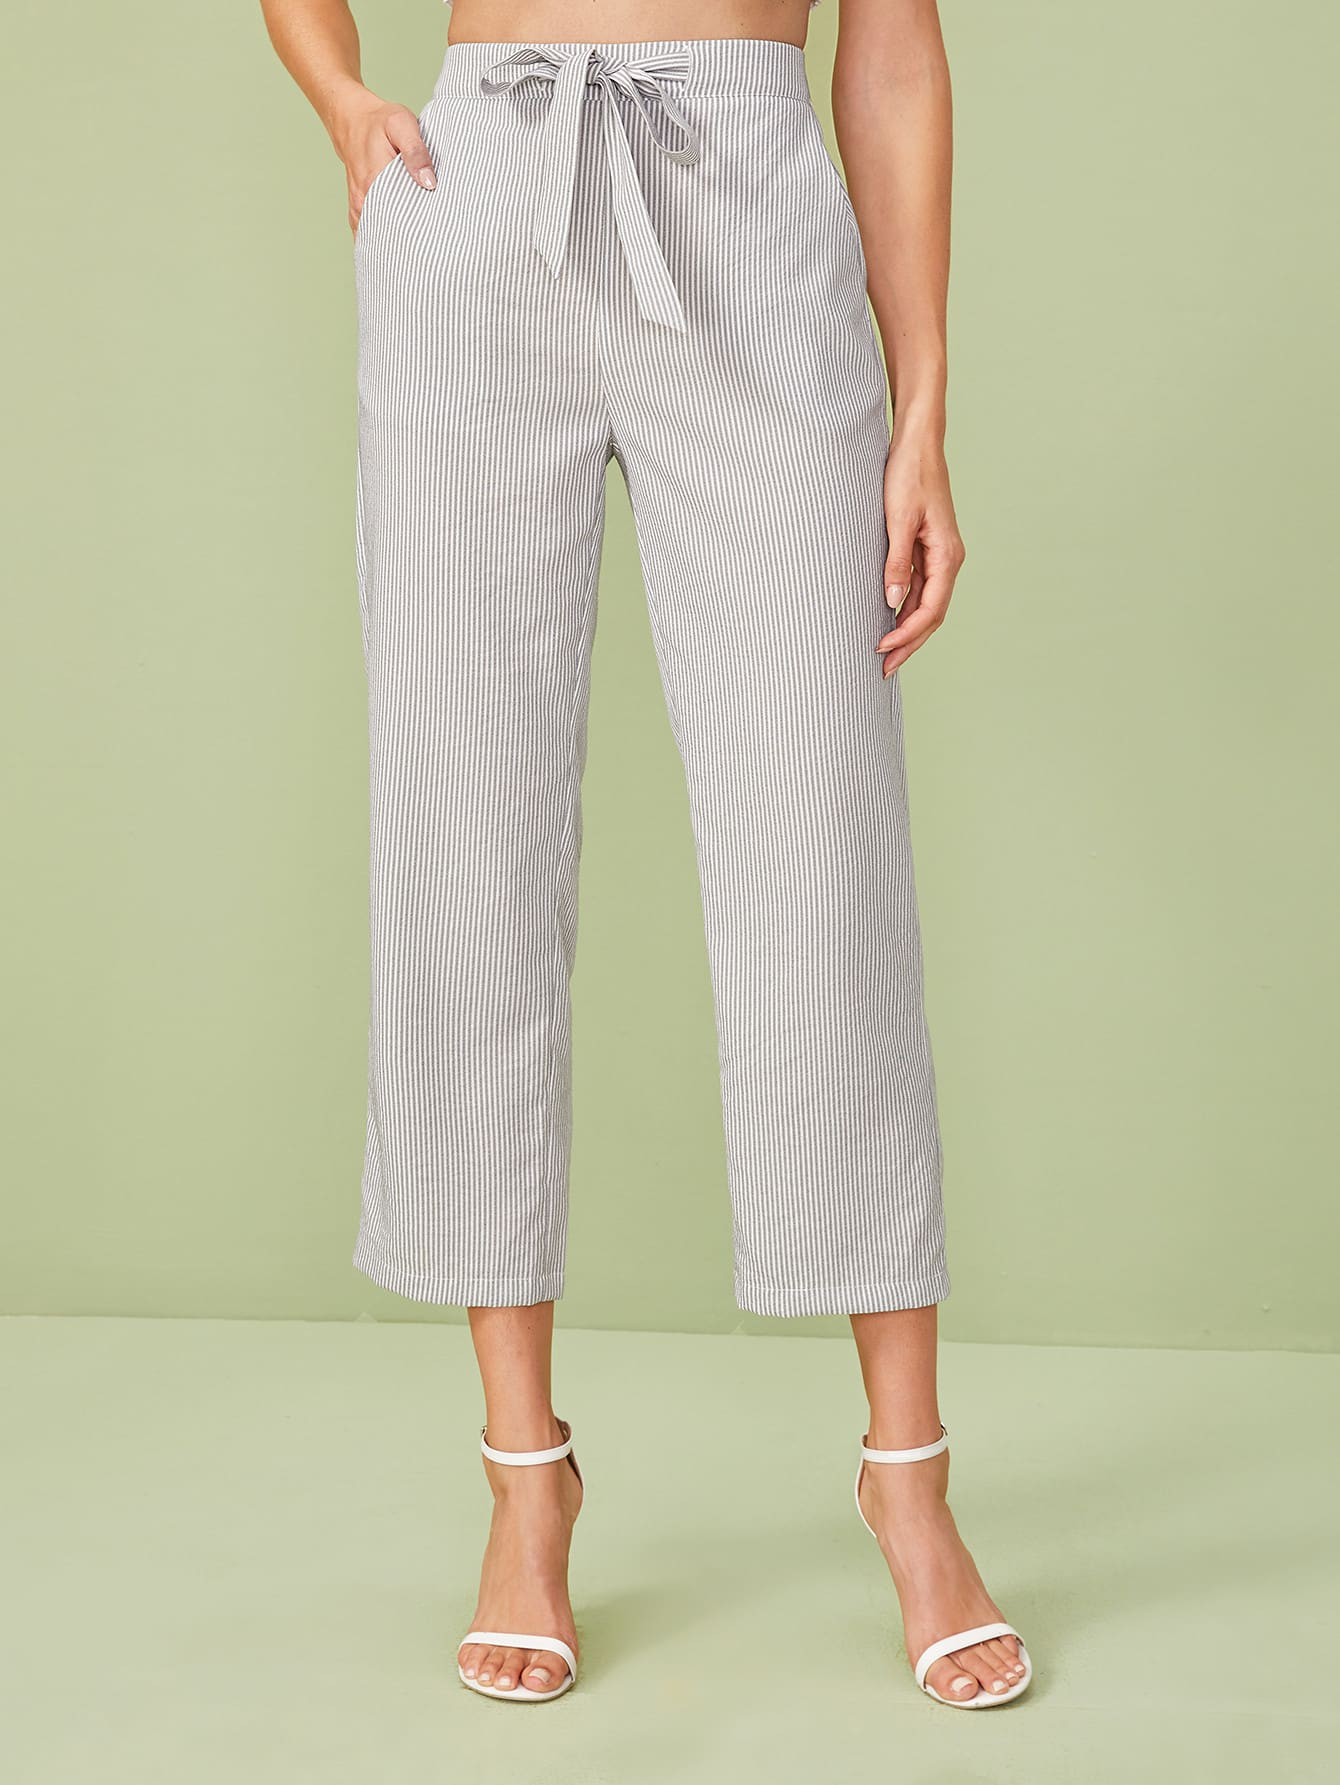 Tie Front Vertical-Striped Pants